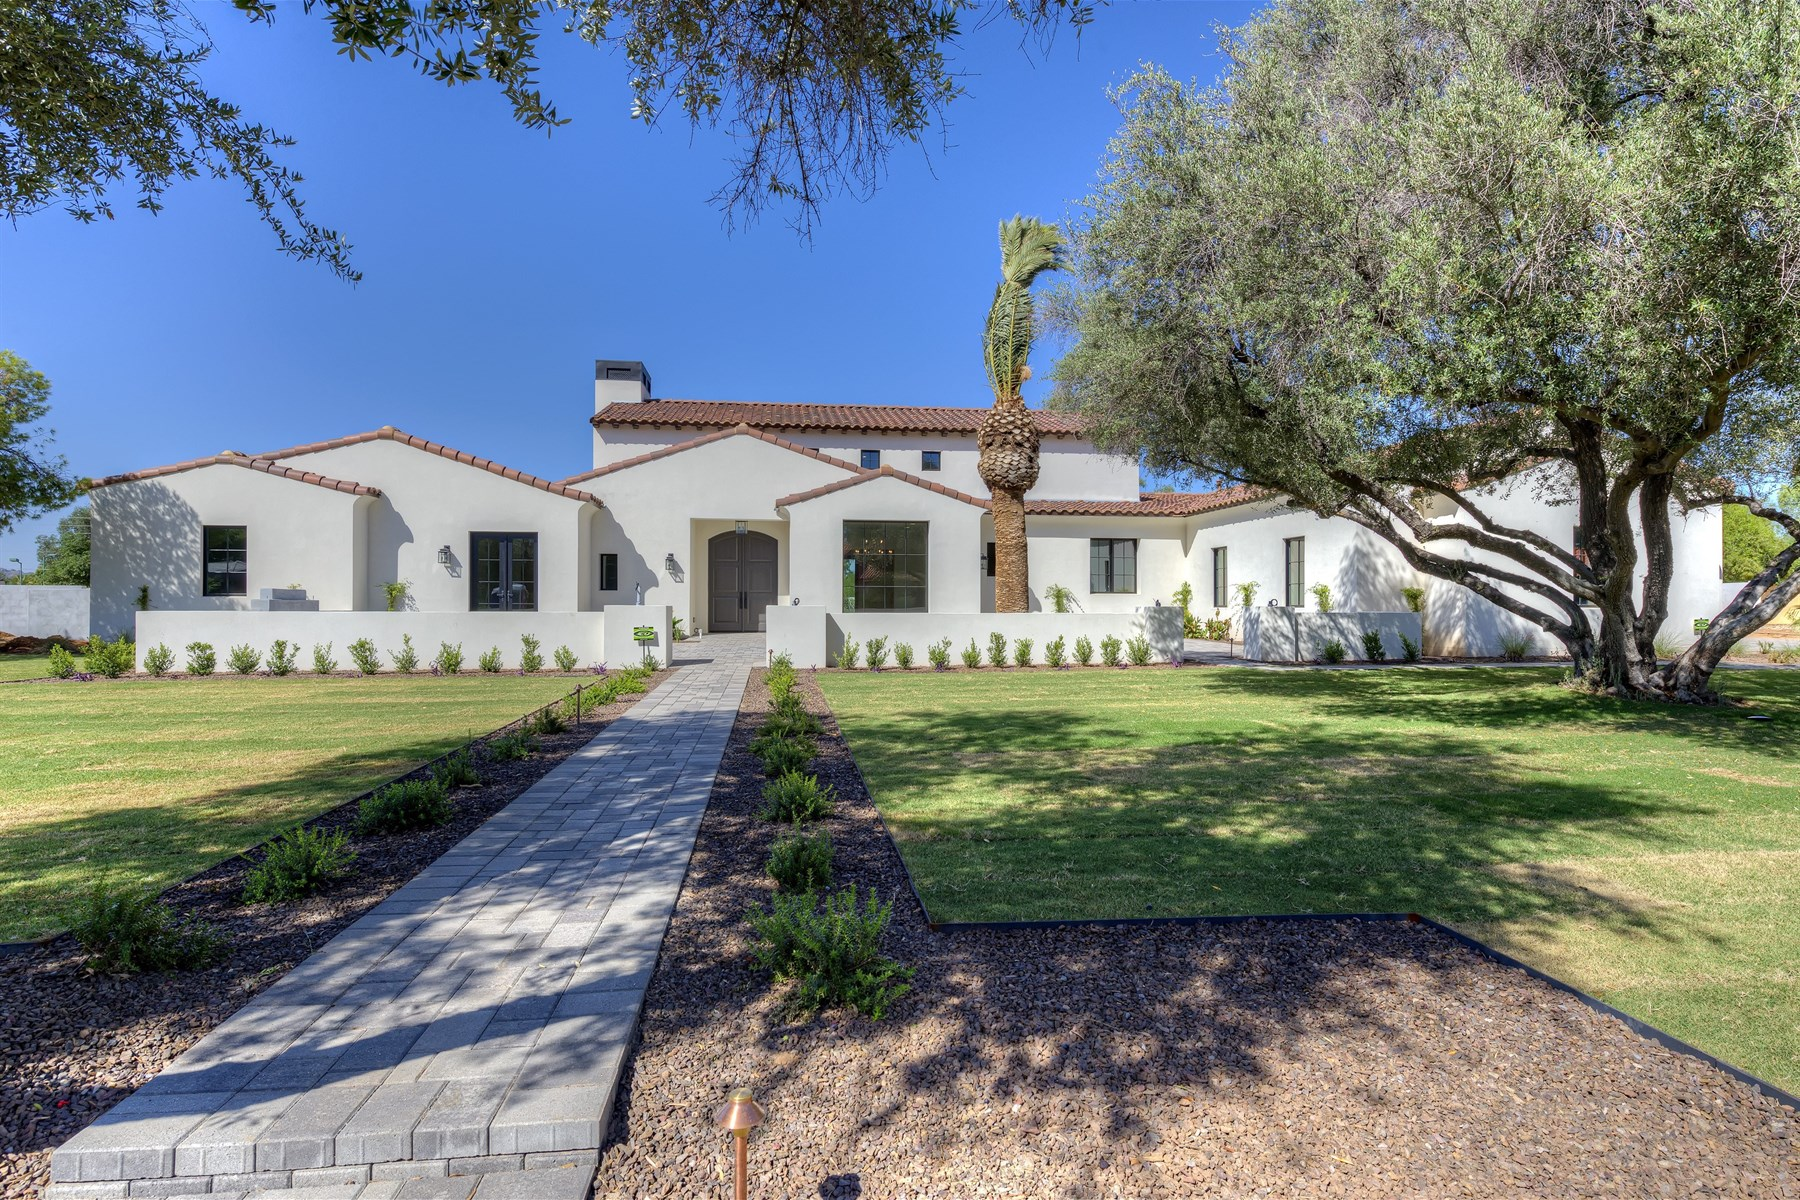 Single Family Home for Sale at Custom Santa Barbara Inspired Build To Suit In Guard-gated Equestrian Manor 12028 N 60th Place Scottsdale, Arizona, 85254 United States